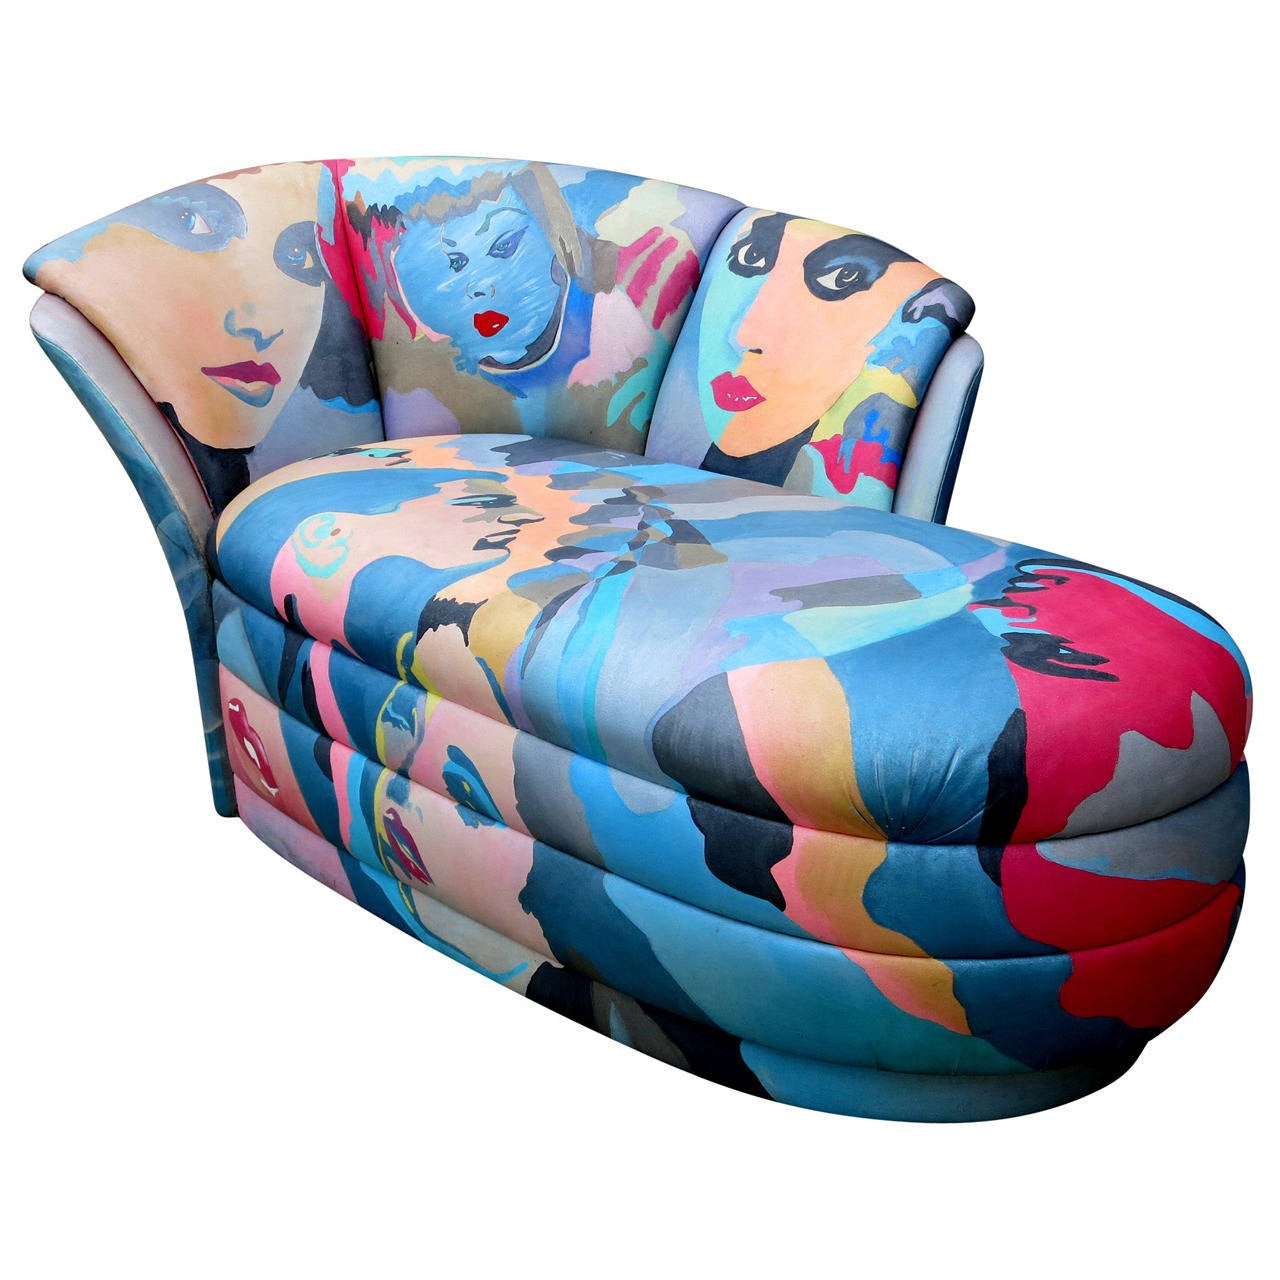 Pop Art Hand-Painted Chaise Lounge by Robert Fischer